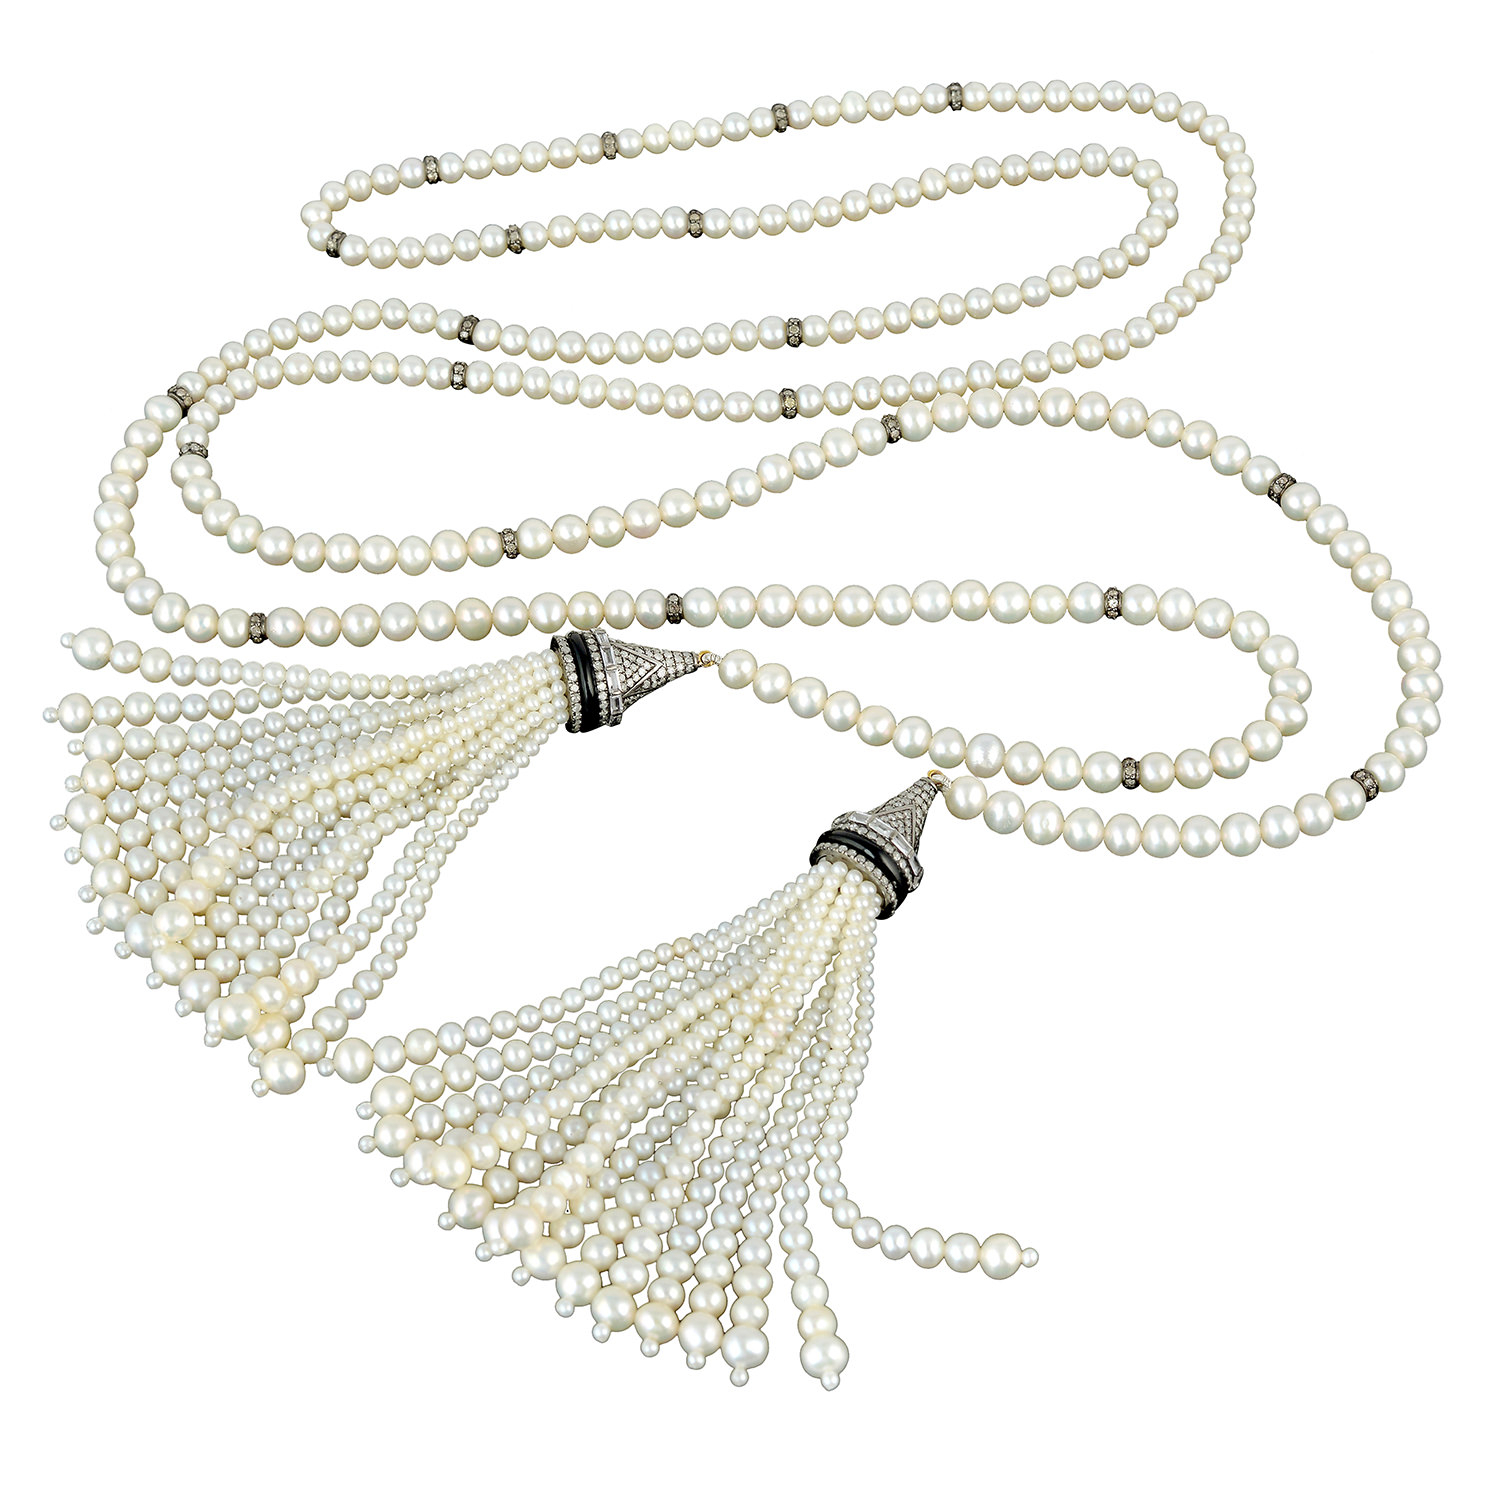 Pave Diamond Onyx Sapphire Pearl Beads Lariat Tassel Necklace 18kt In Current Beads & Pavé Necklaces (View 8 of 25)